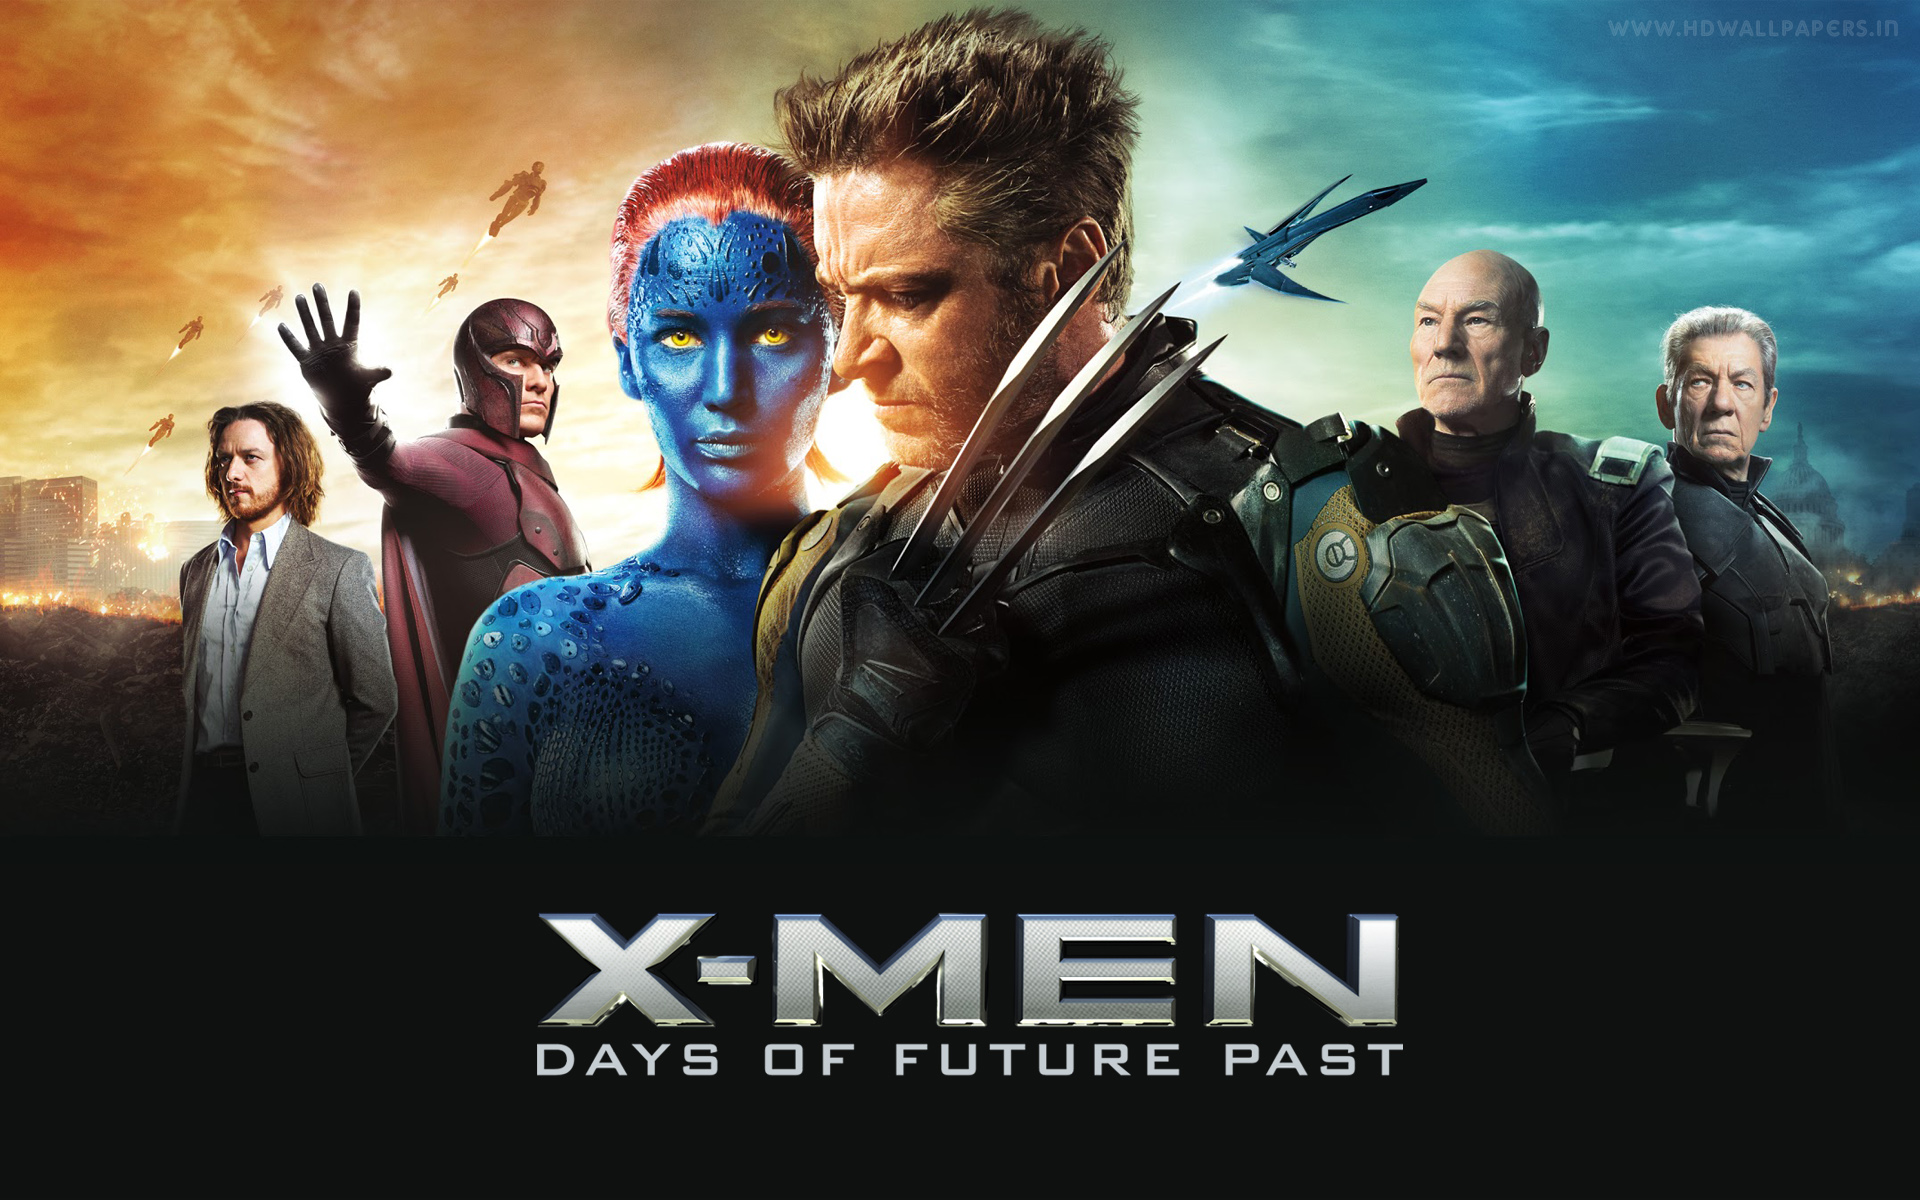 'X-Men: Days of Future Past' Banner Art